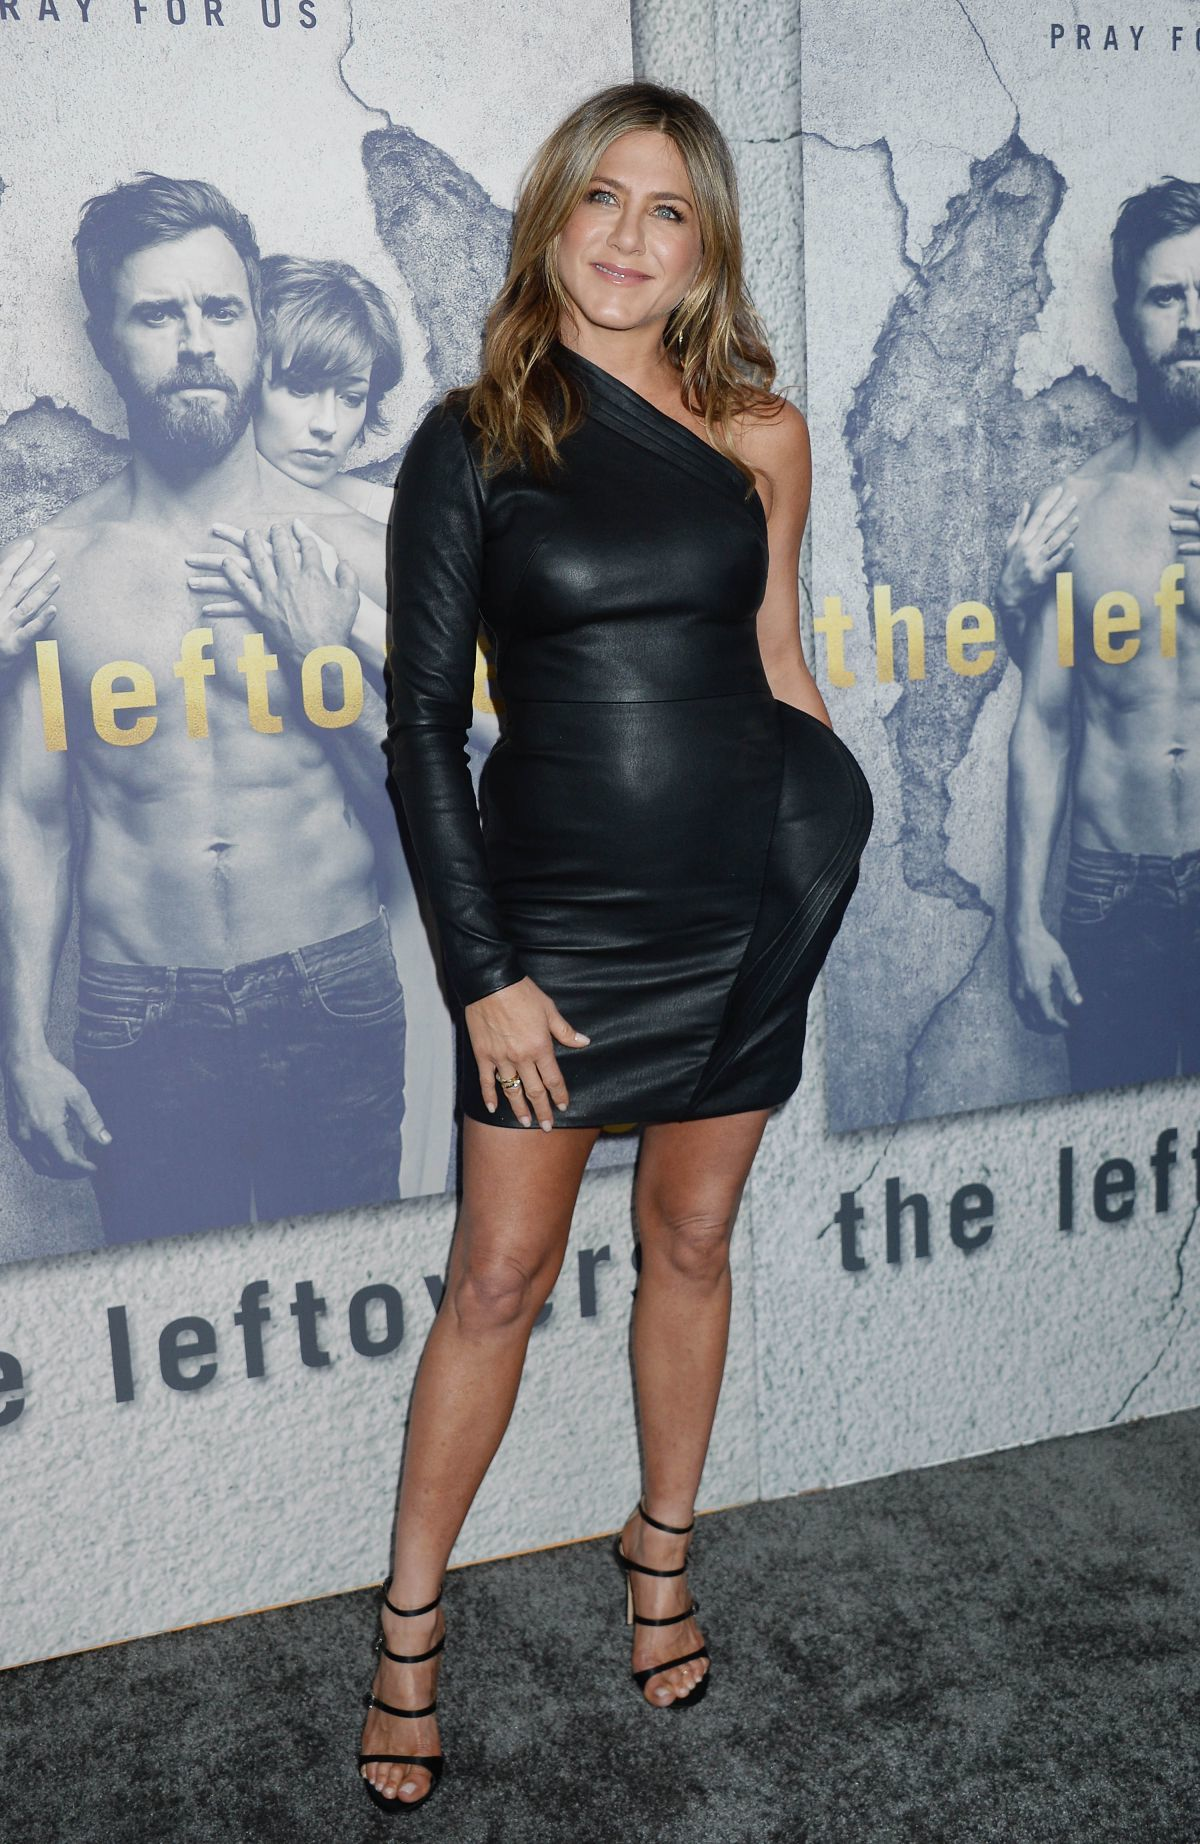 jennifer-aniston-at-the-leftovers-season-3-premiere-in-los-angeles-04-04-2017-5-1613276728